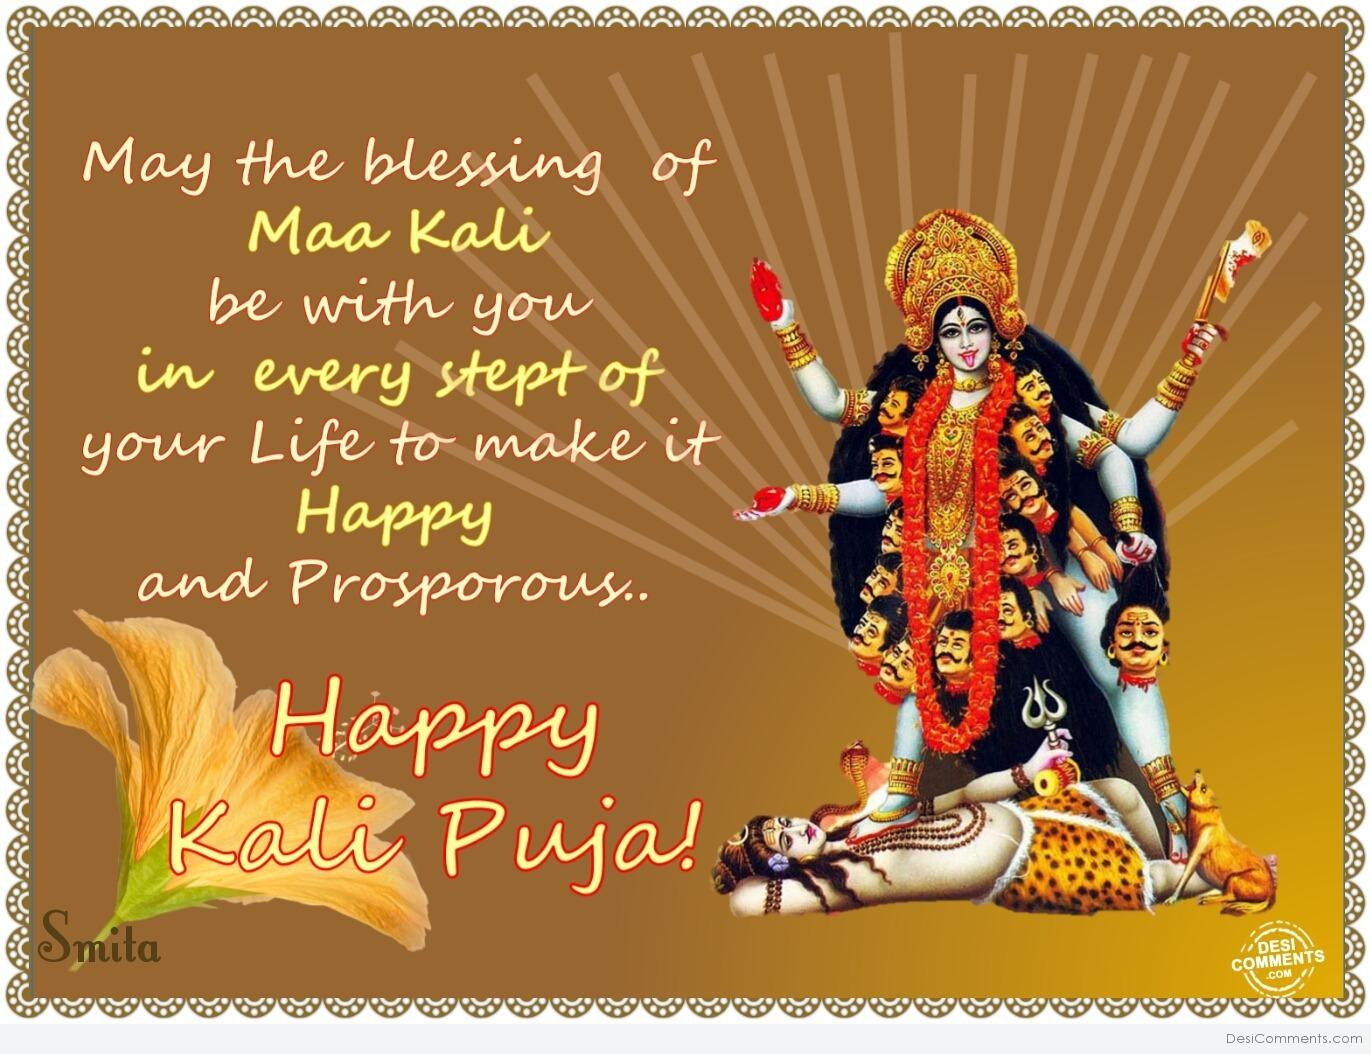 Kali puja pictures images graphics happy kali puja kristyandbryce Image collections